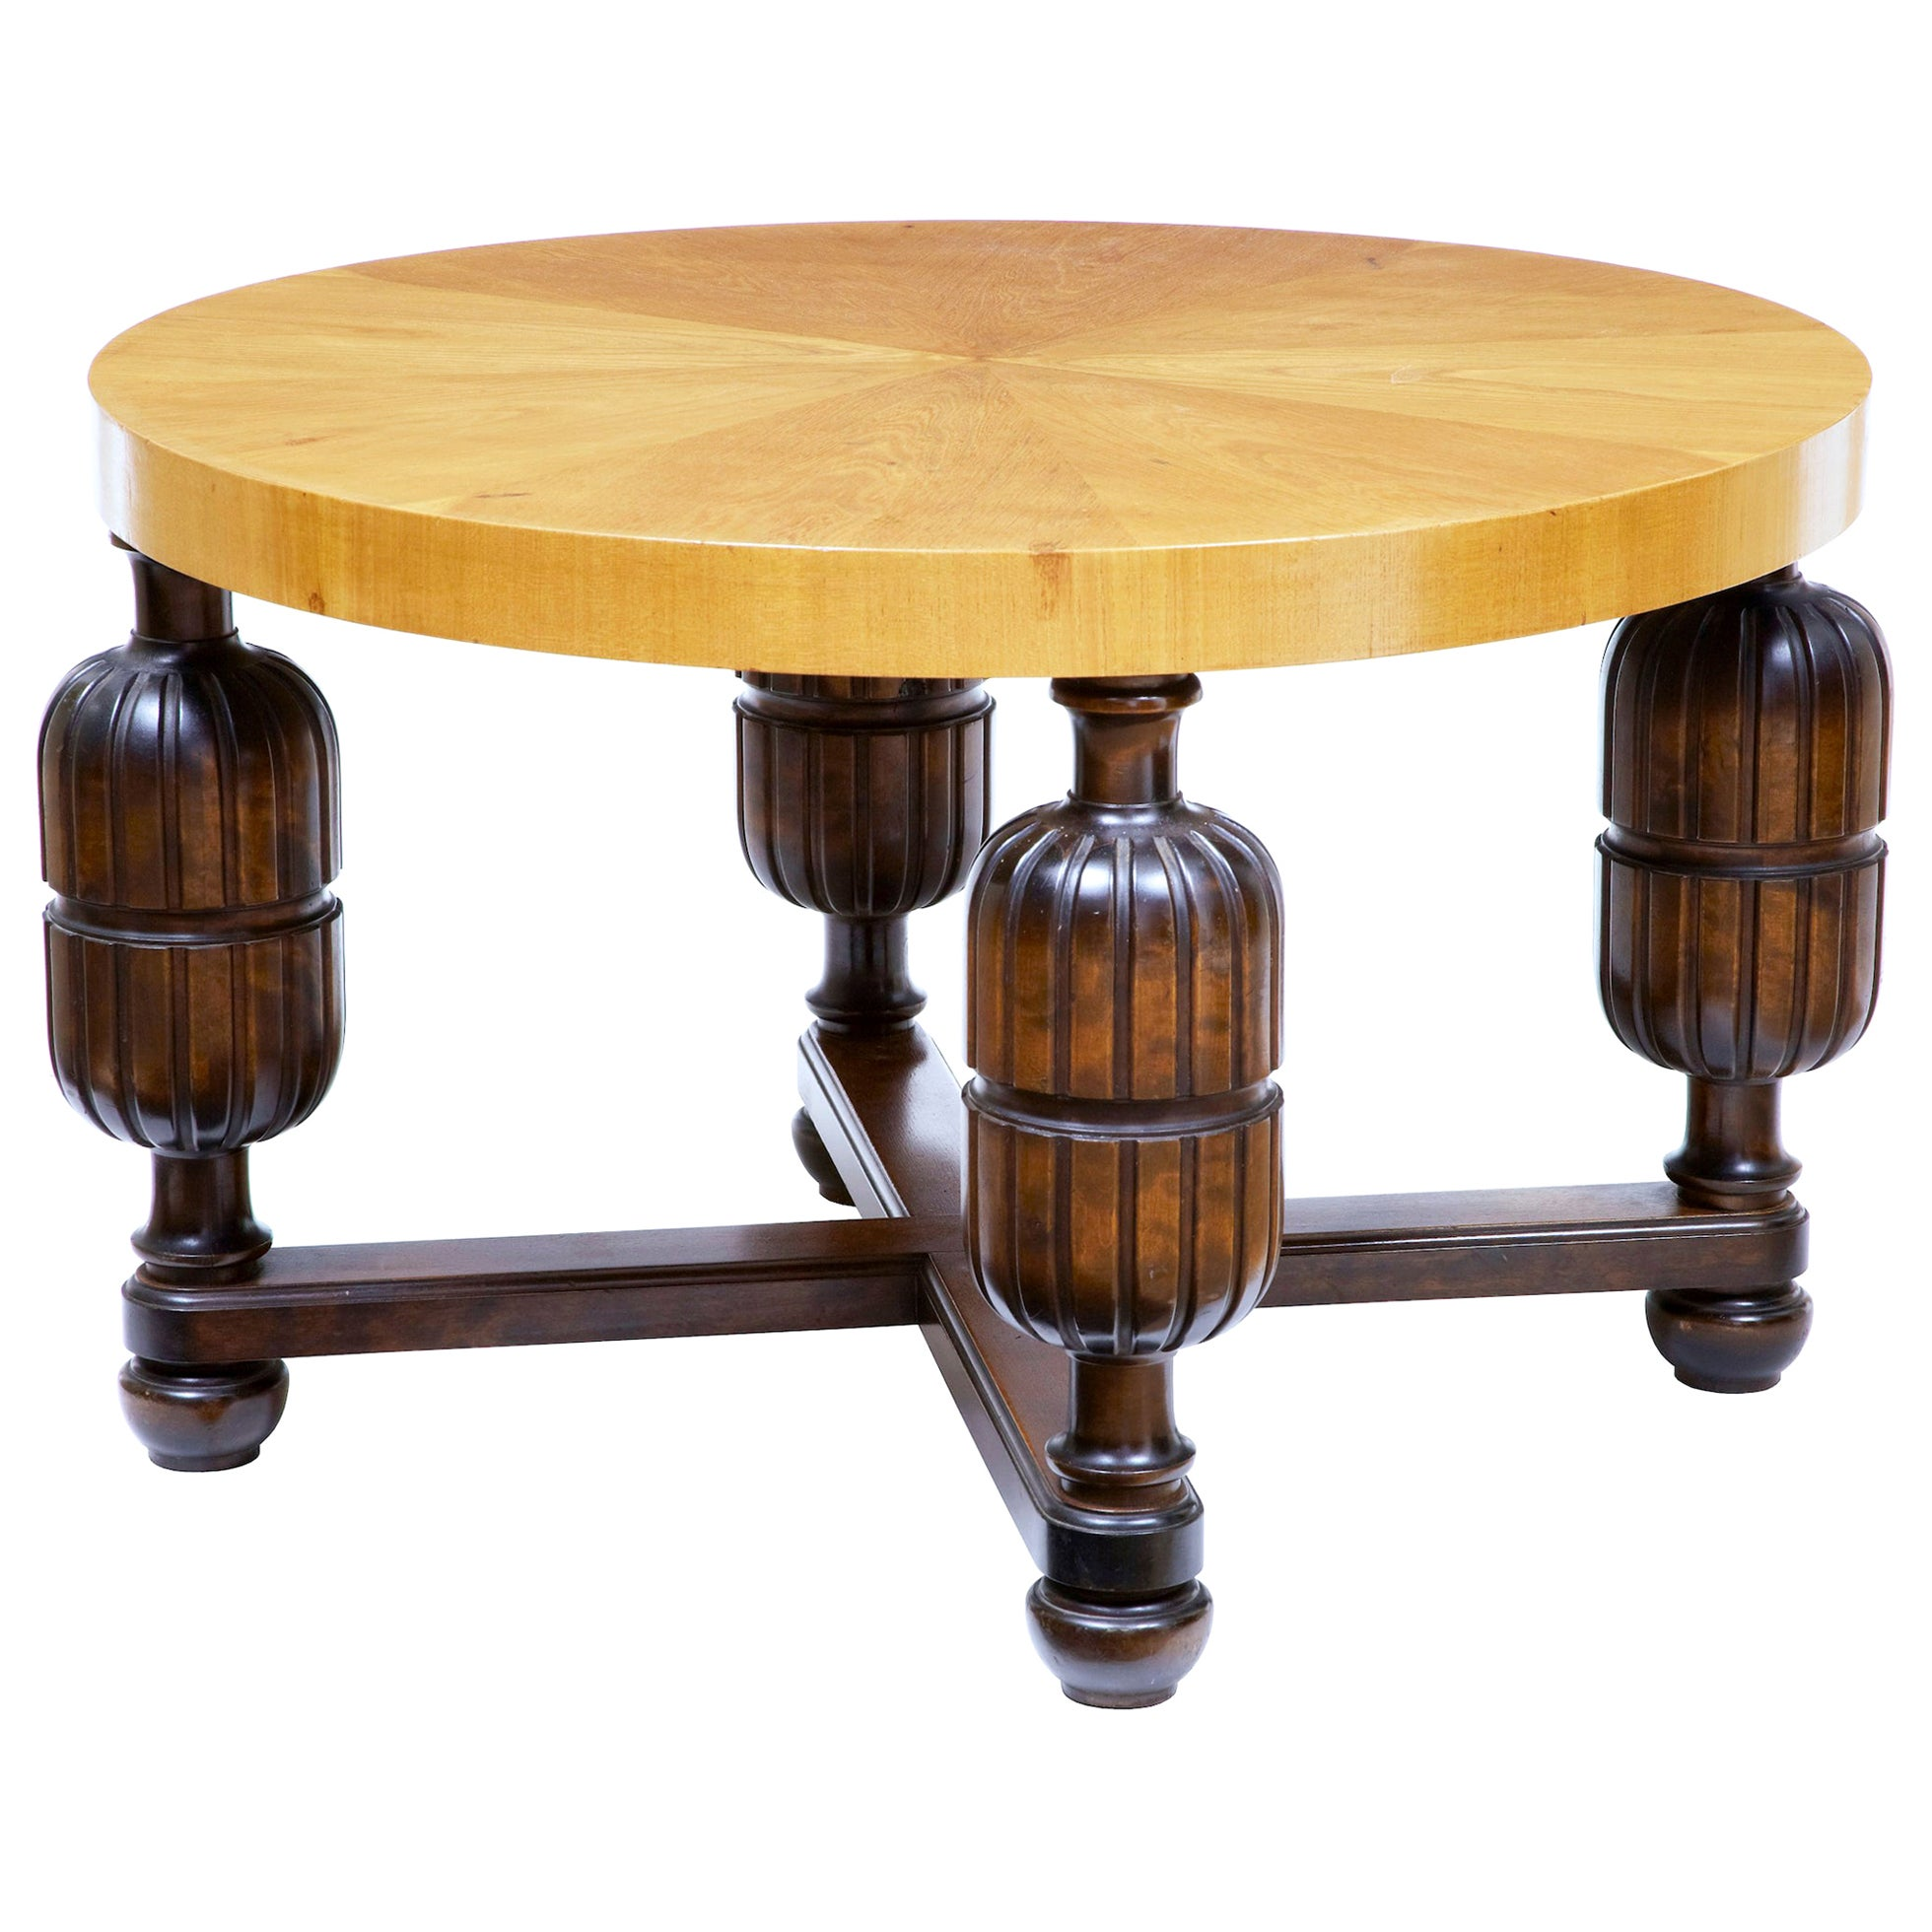 Swedish Art Deco Elm and Birch Coffee Table